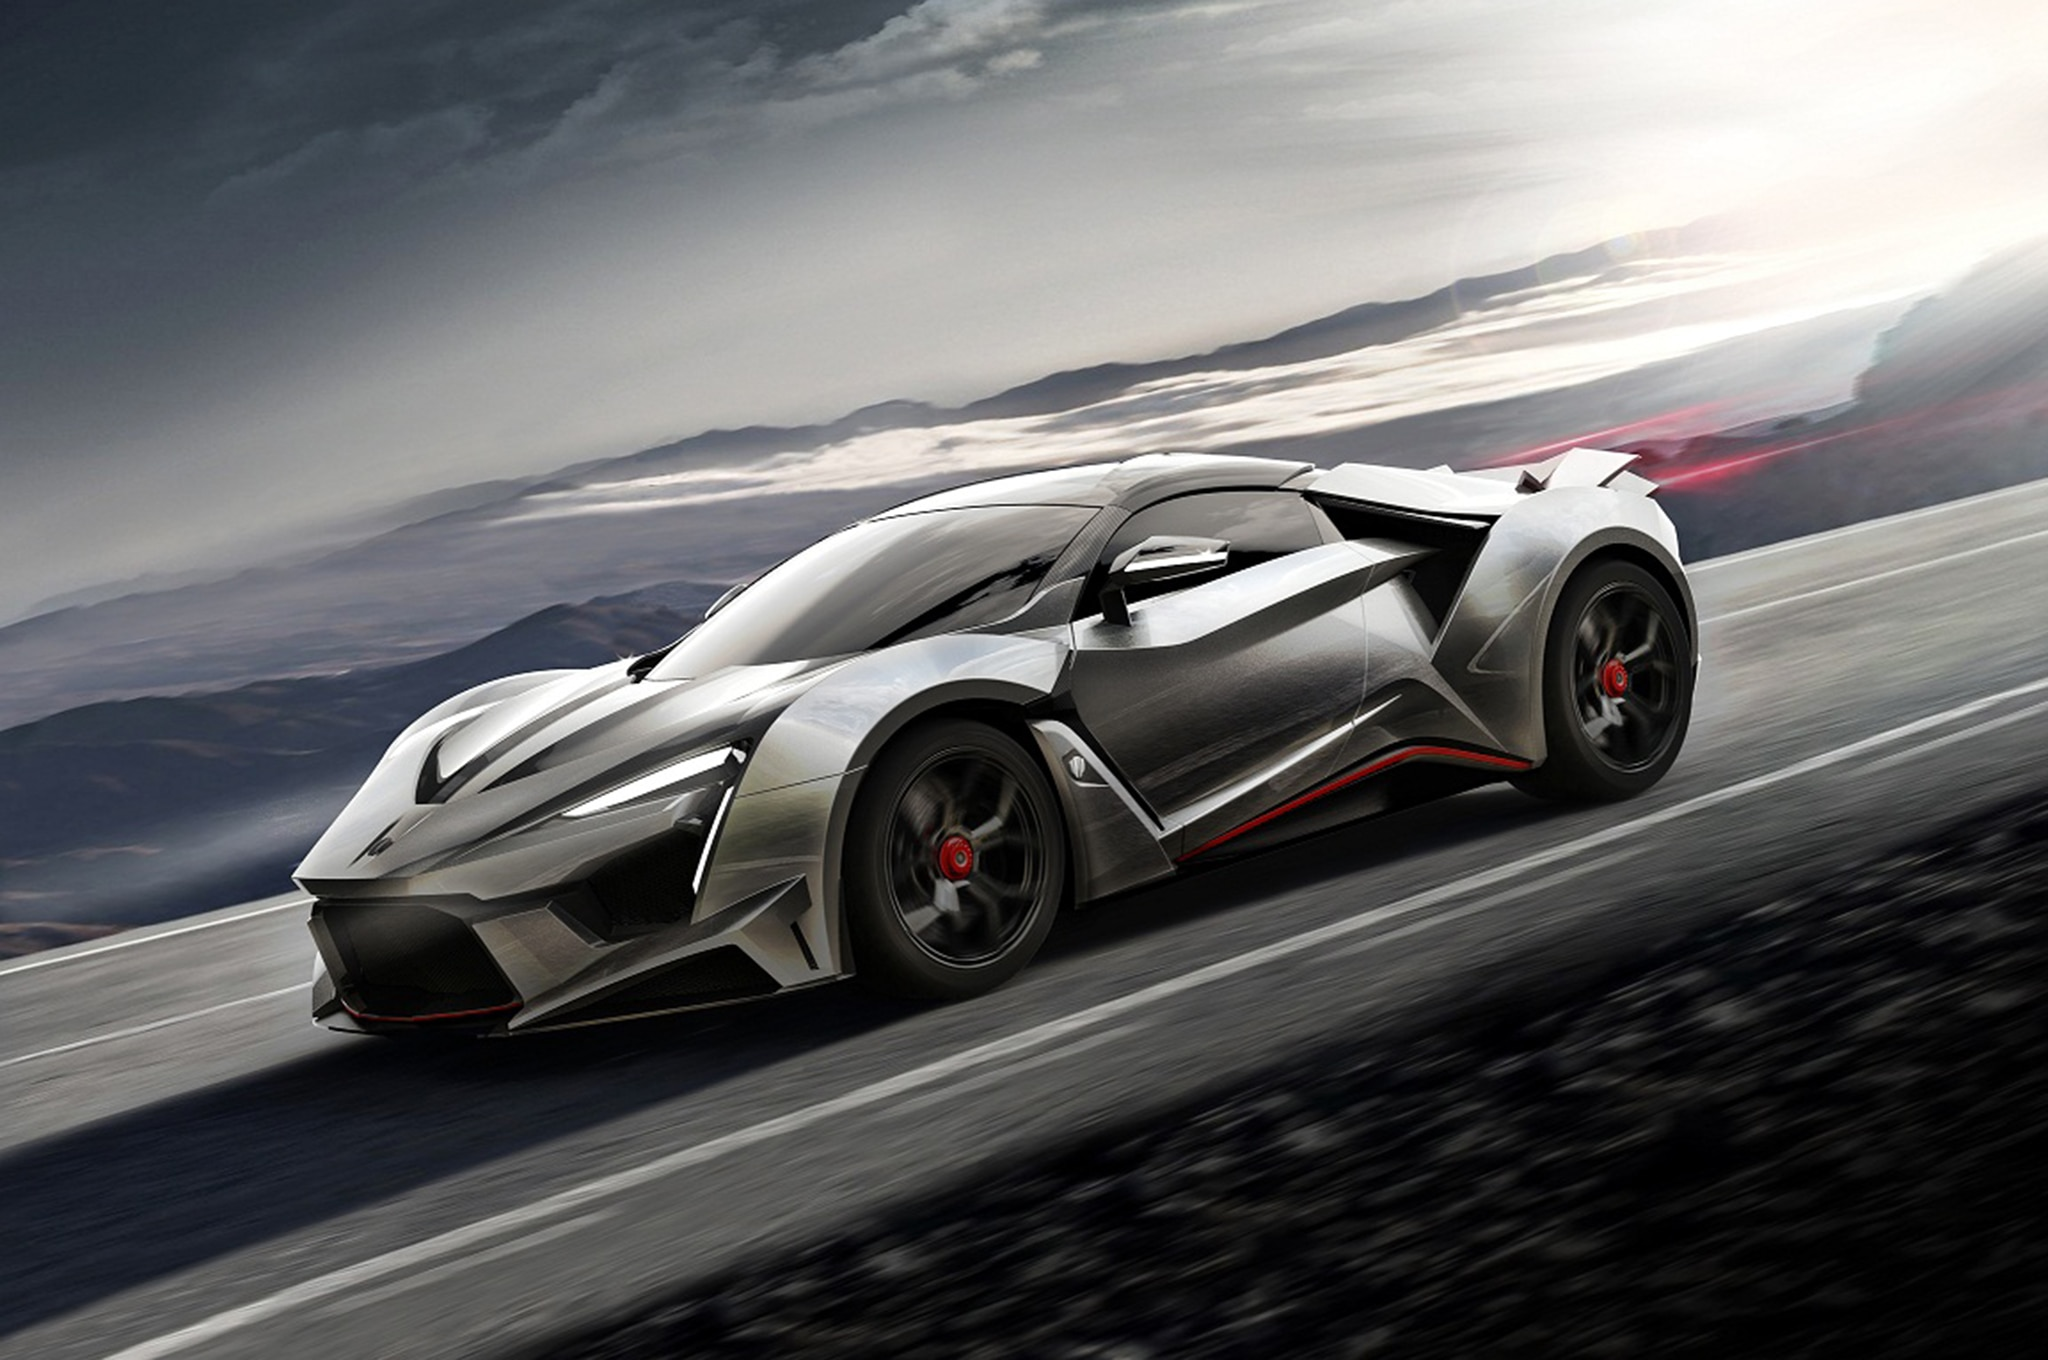 W Motors Fenyr >> All That Glittered: Our 11 Favorite Cars from the 2015 Dubai Auto Show